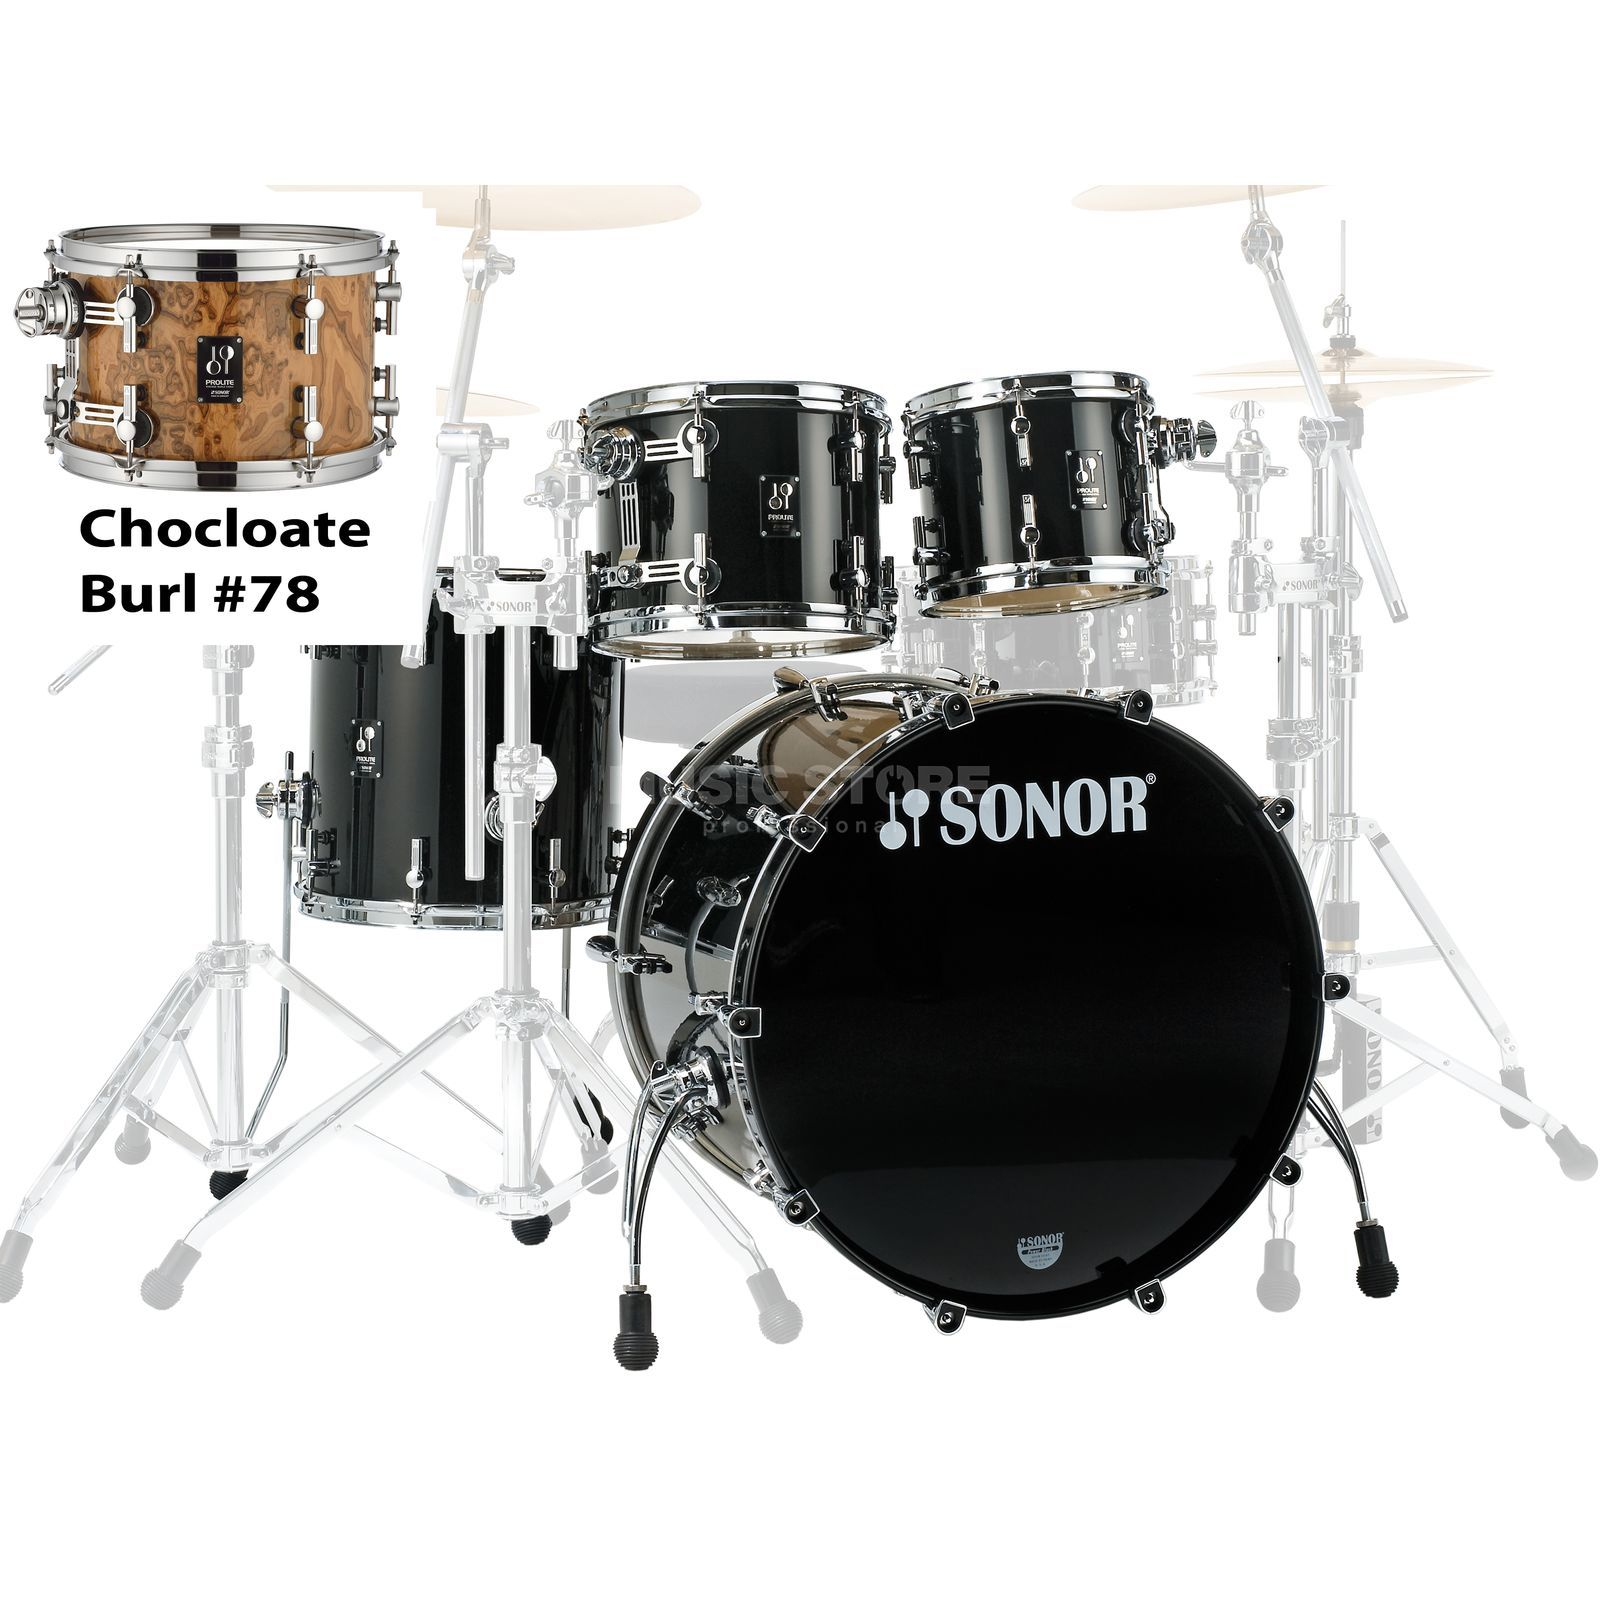 Sonor ProLite Stage 3, Chocolate Burl #78 Produktbild